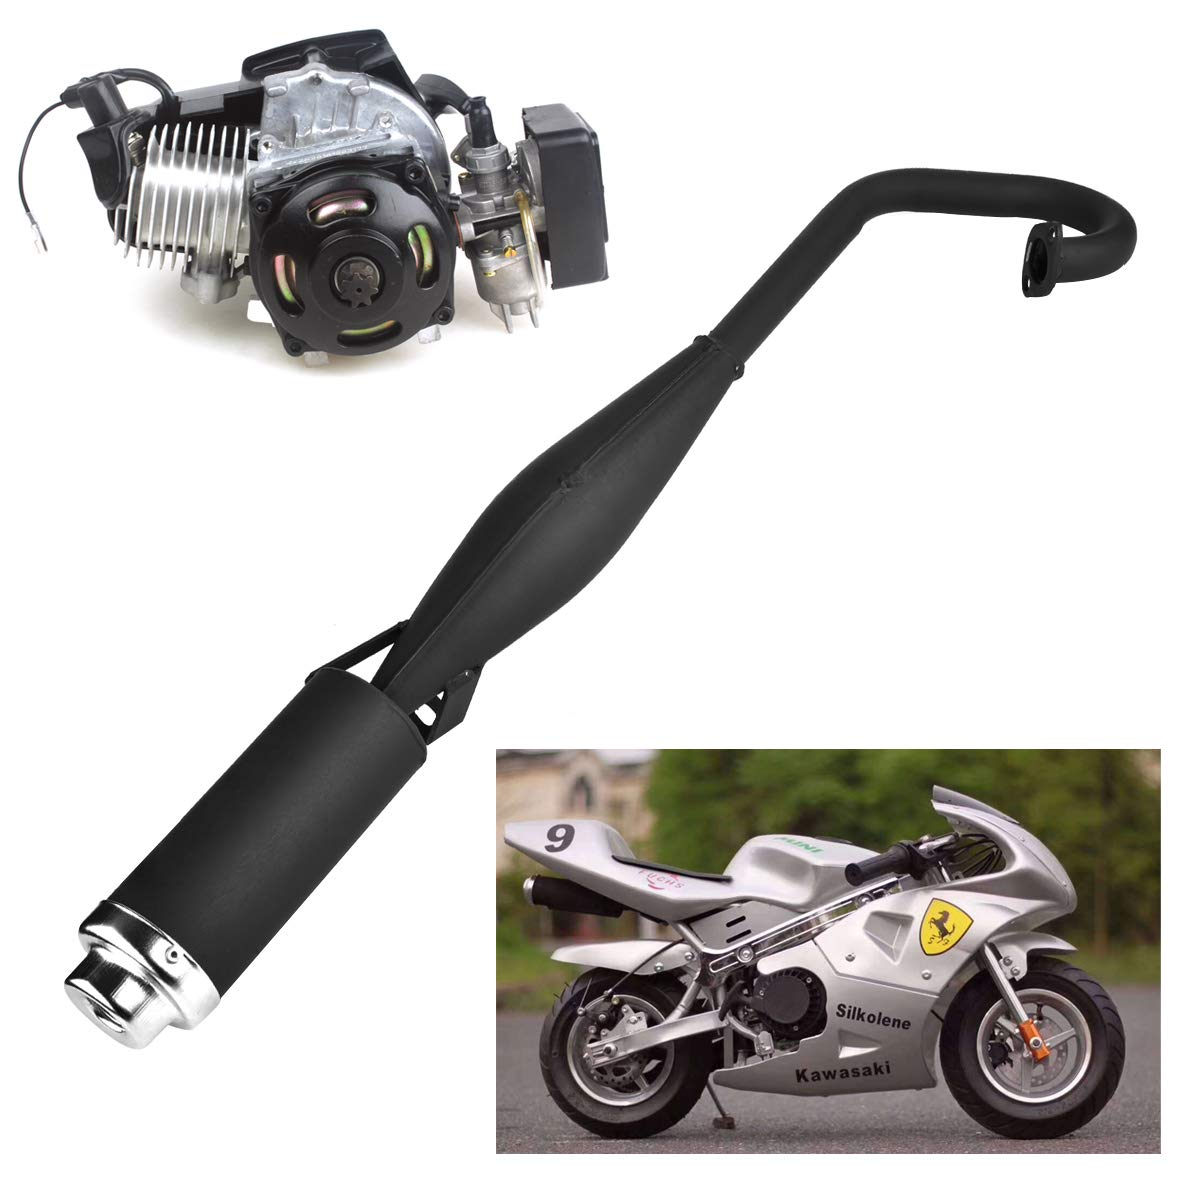 47cc 49cc 2 Stroke Engine Pocket Bike Mini Quad Exhaust Pipe Muffler with Expansion Chamber by Wingsmoto (Image #1)